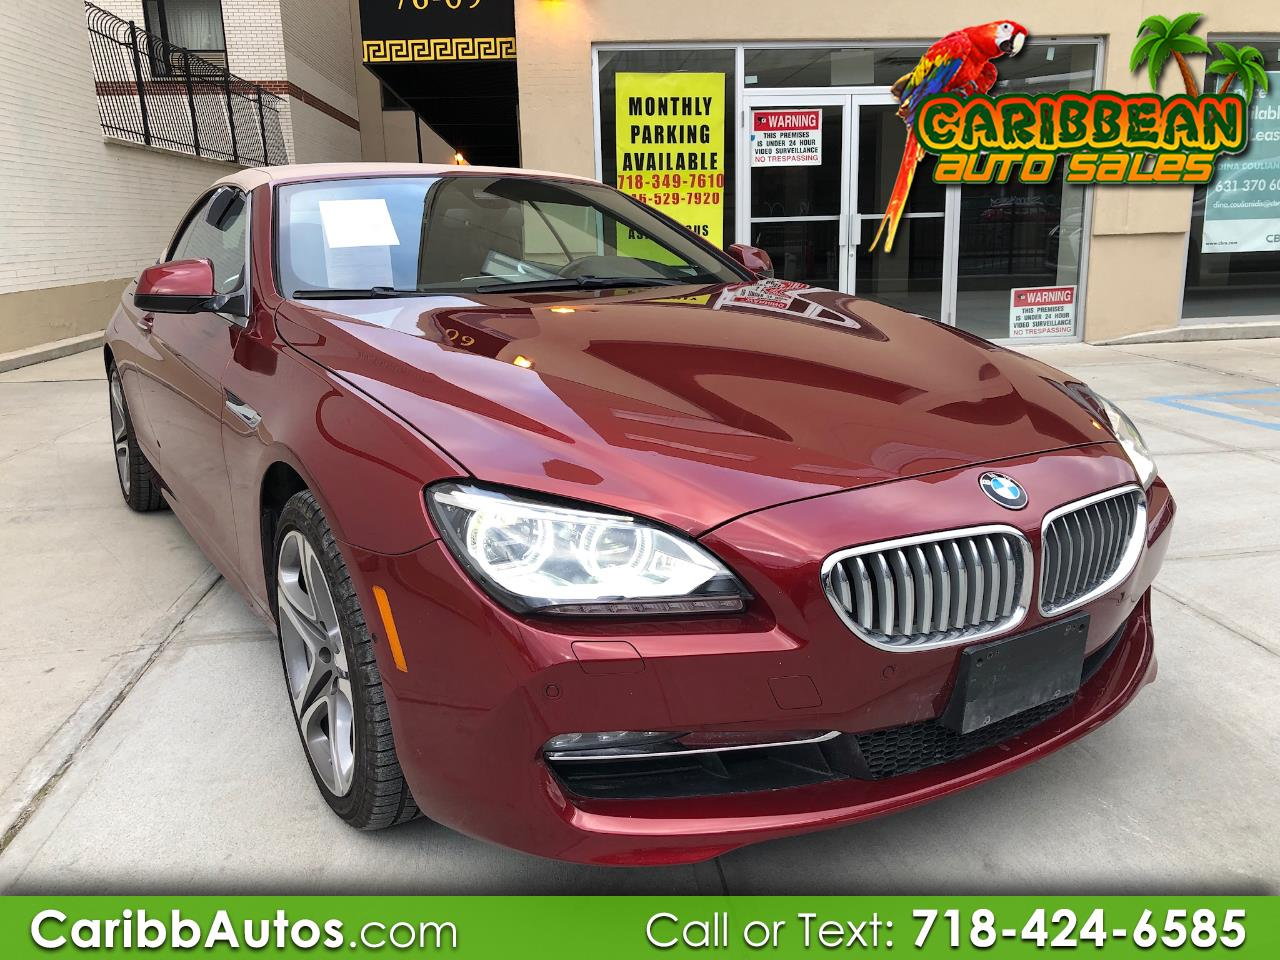 2015 BMW 6 Series 2dr Conv 650i xDrive AWD